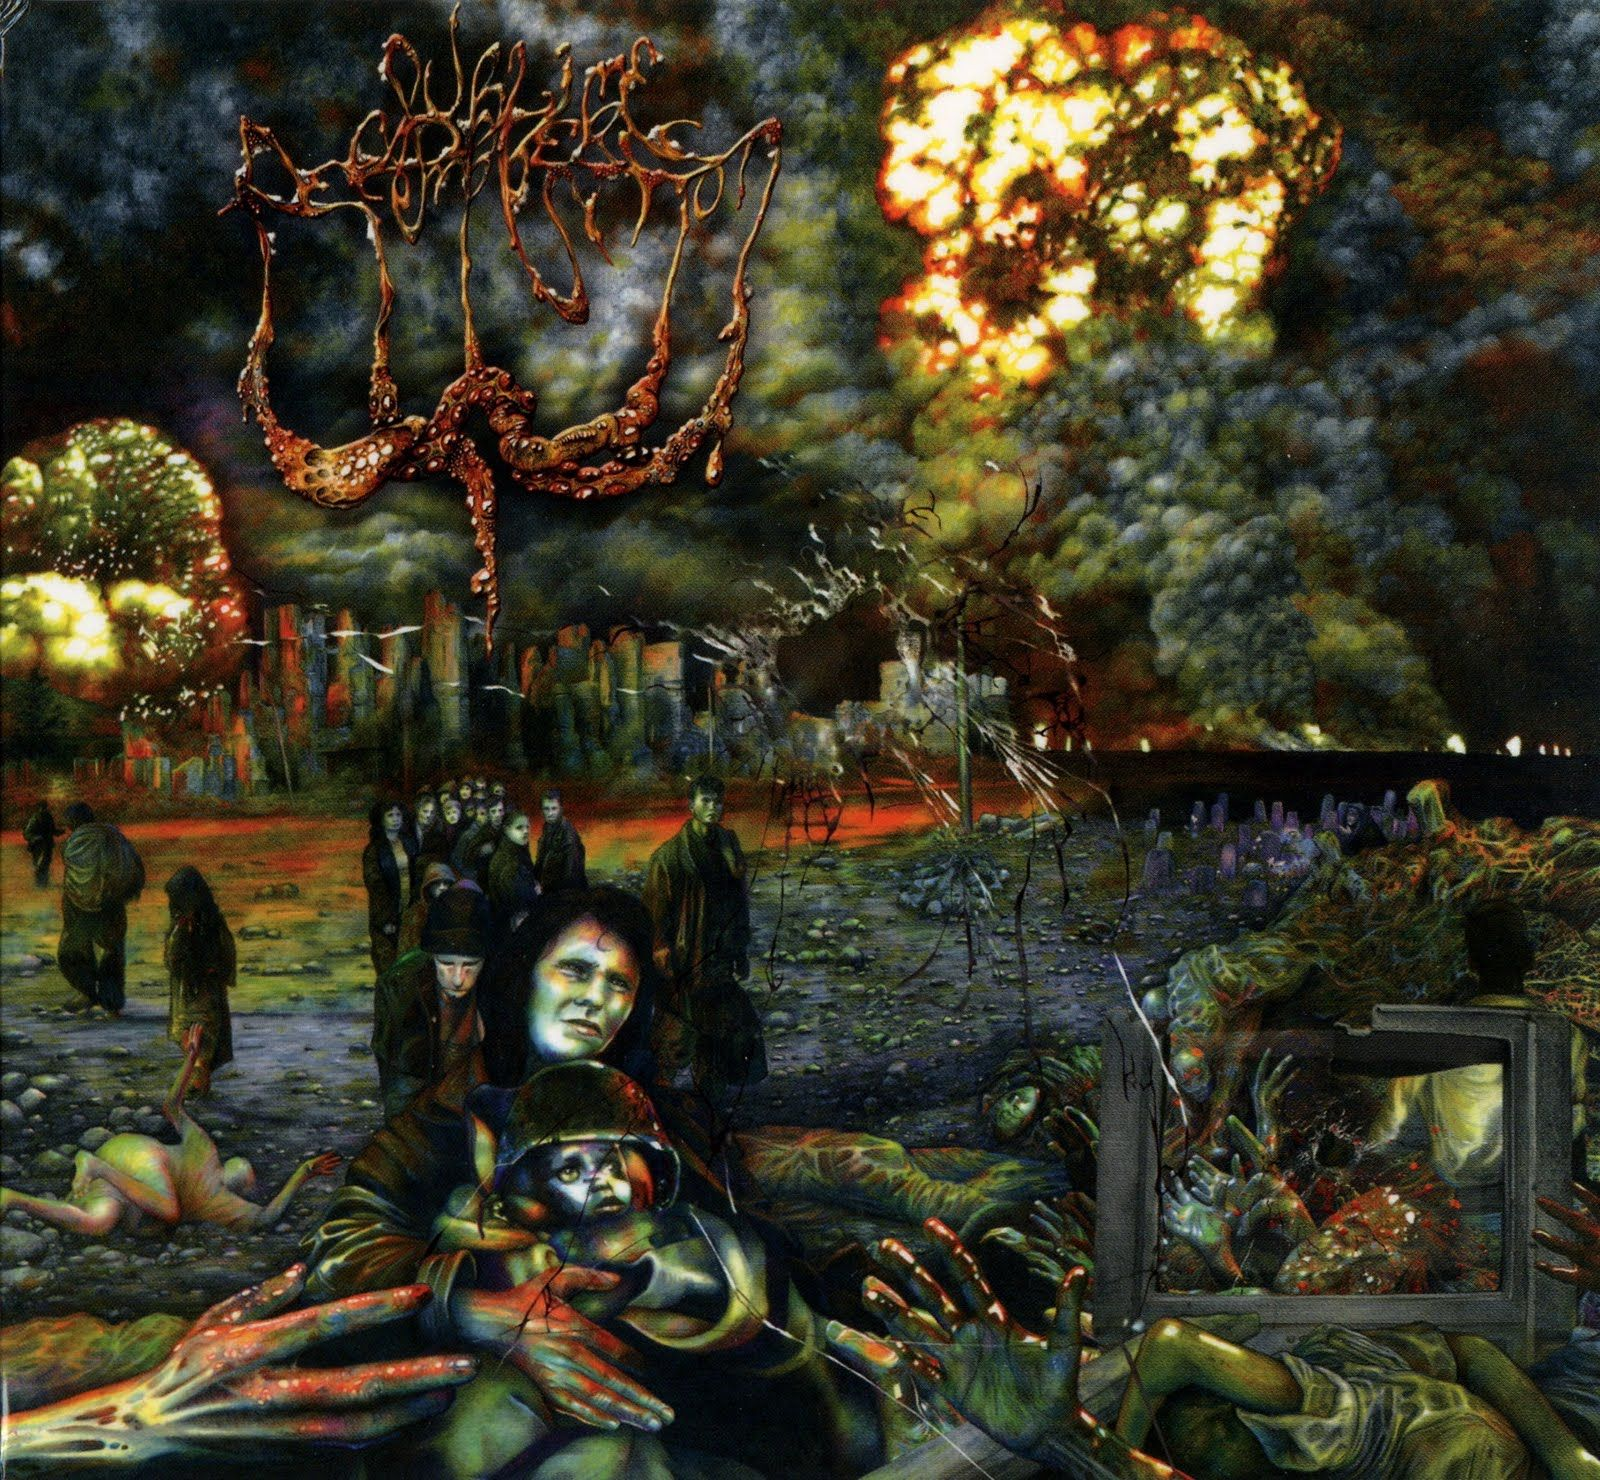 Sublime Cadaveric Decomposition - Inventory of Fixtures